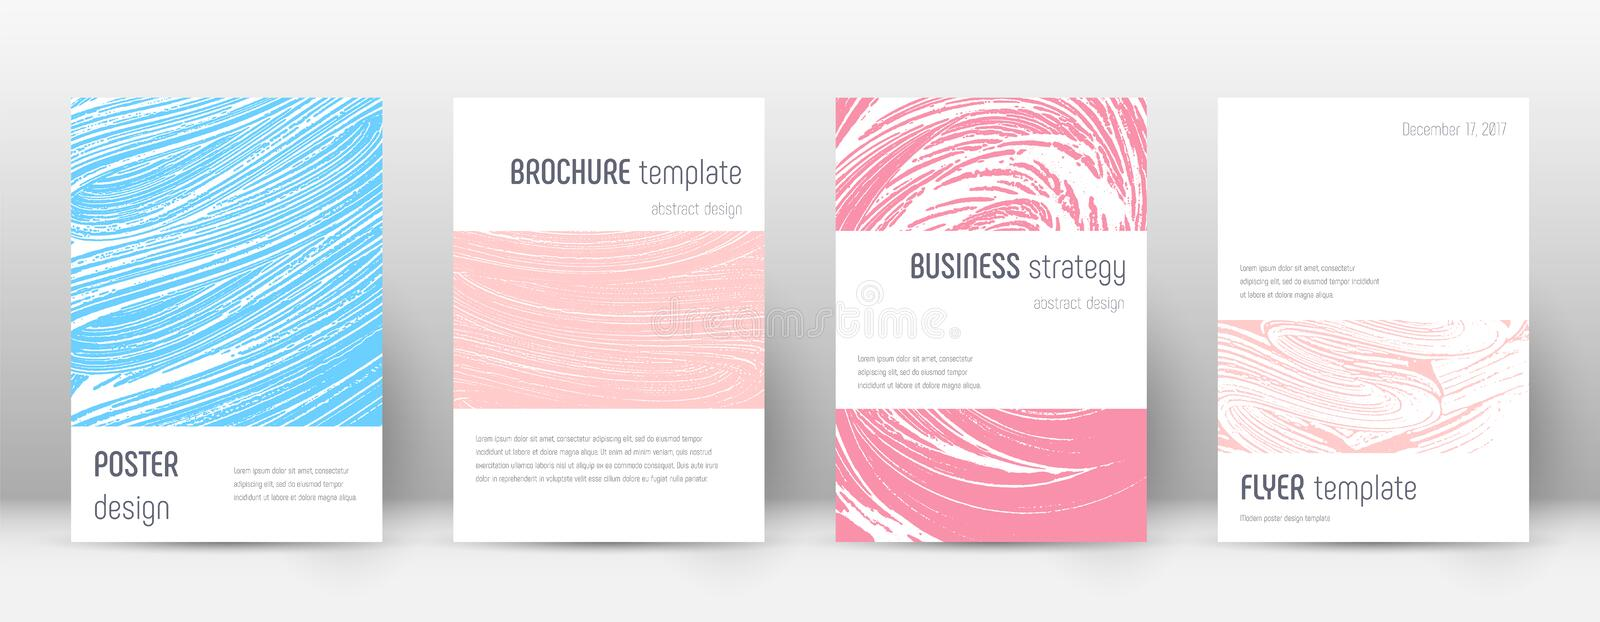 Cover page design template. Minimalistic brochure. Layout. Classic trendy abstract cover page. Pink and blue grunge texture background. Valuable poster stock illustration